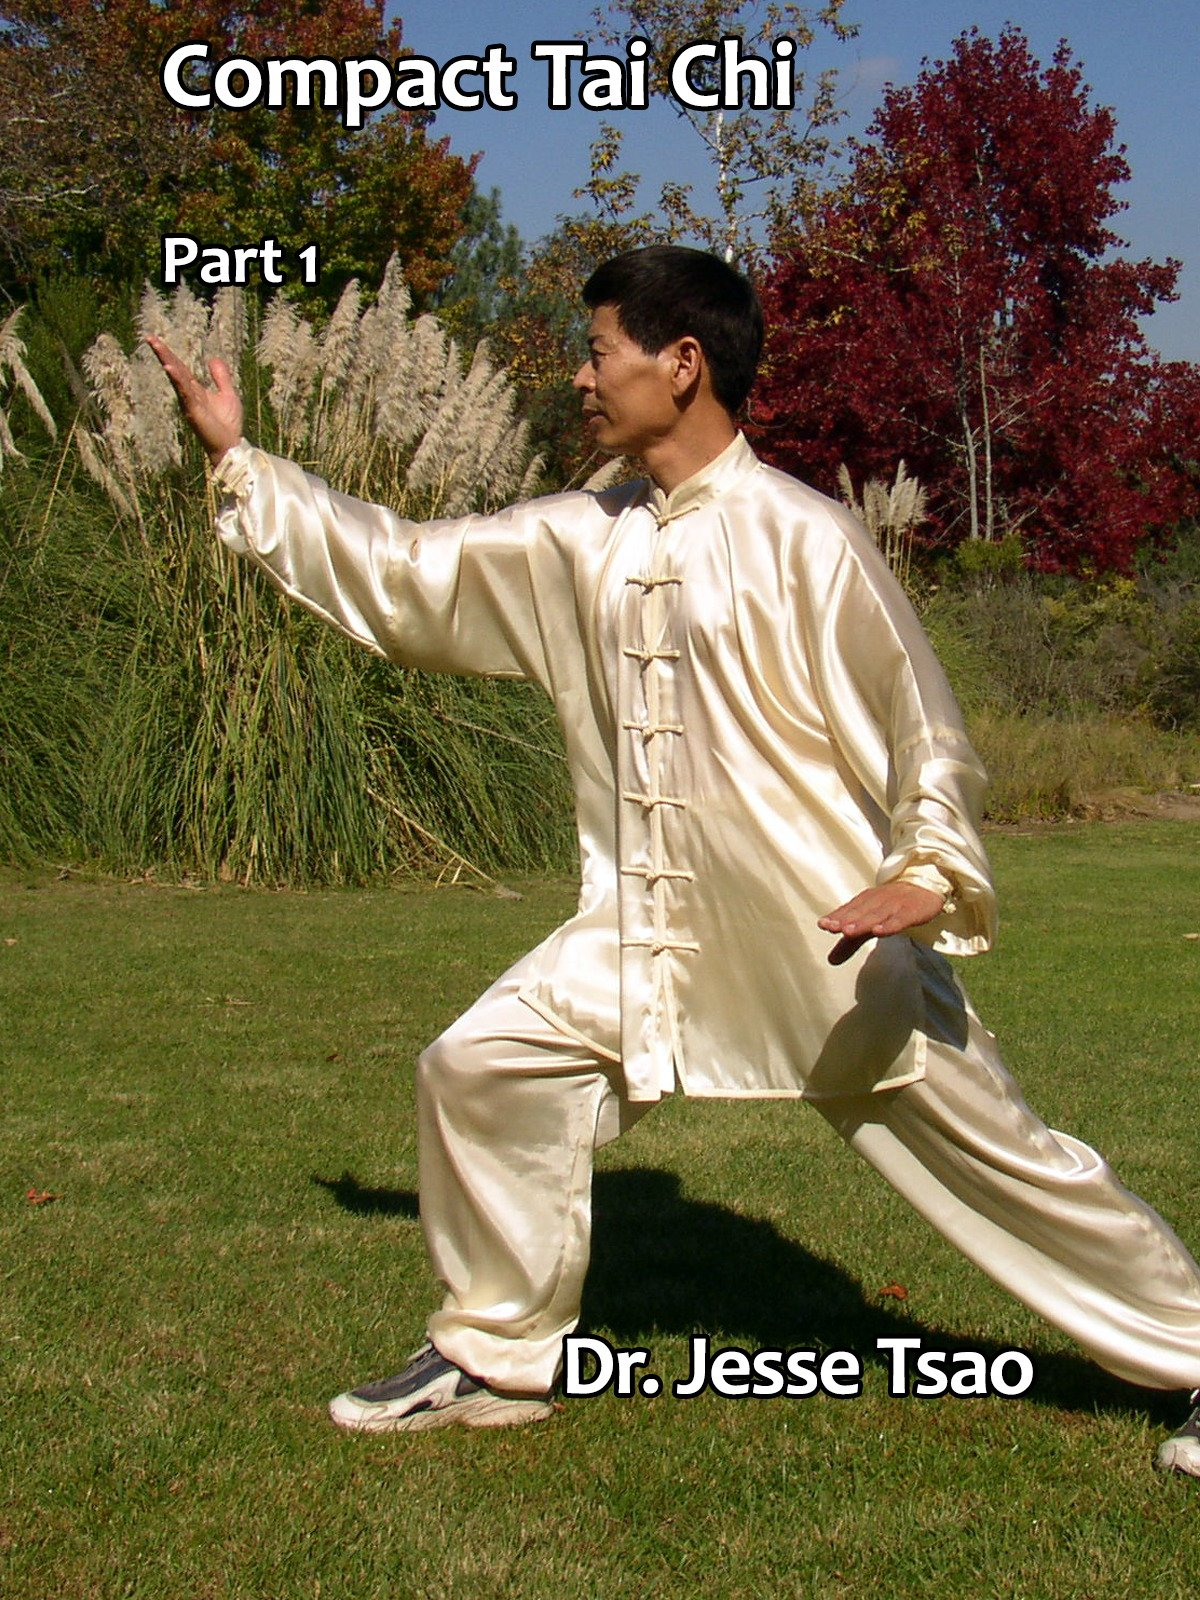 Compact Tai Chi, Part 1 by